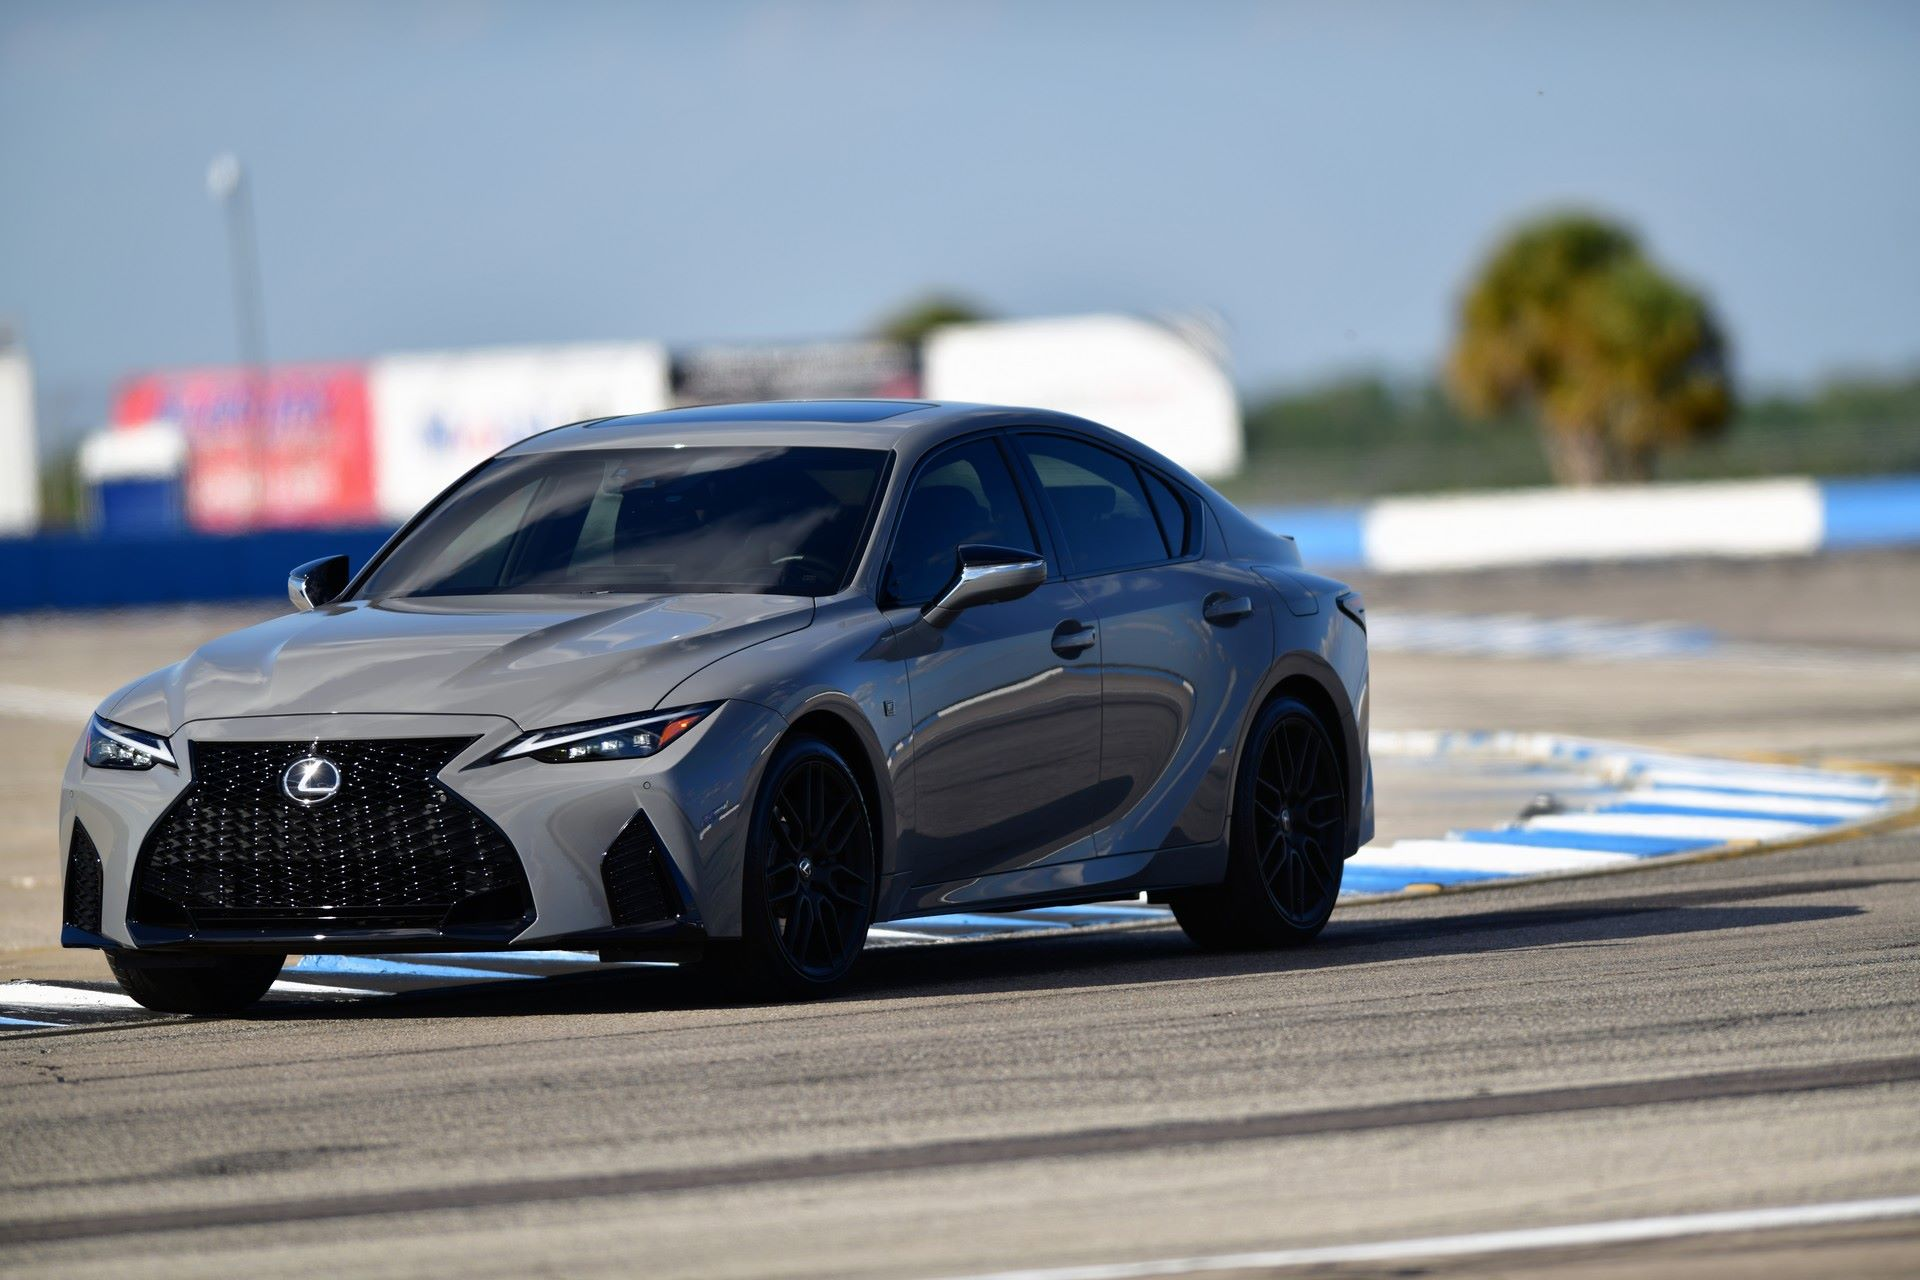 Lexus-IS-500-F-Sport-Performance-Launch-Edition-34